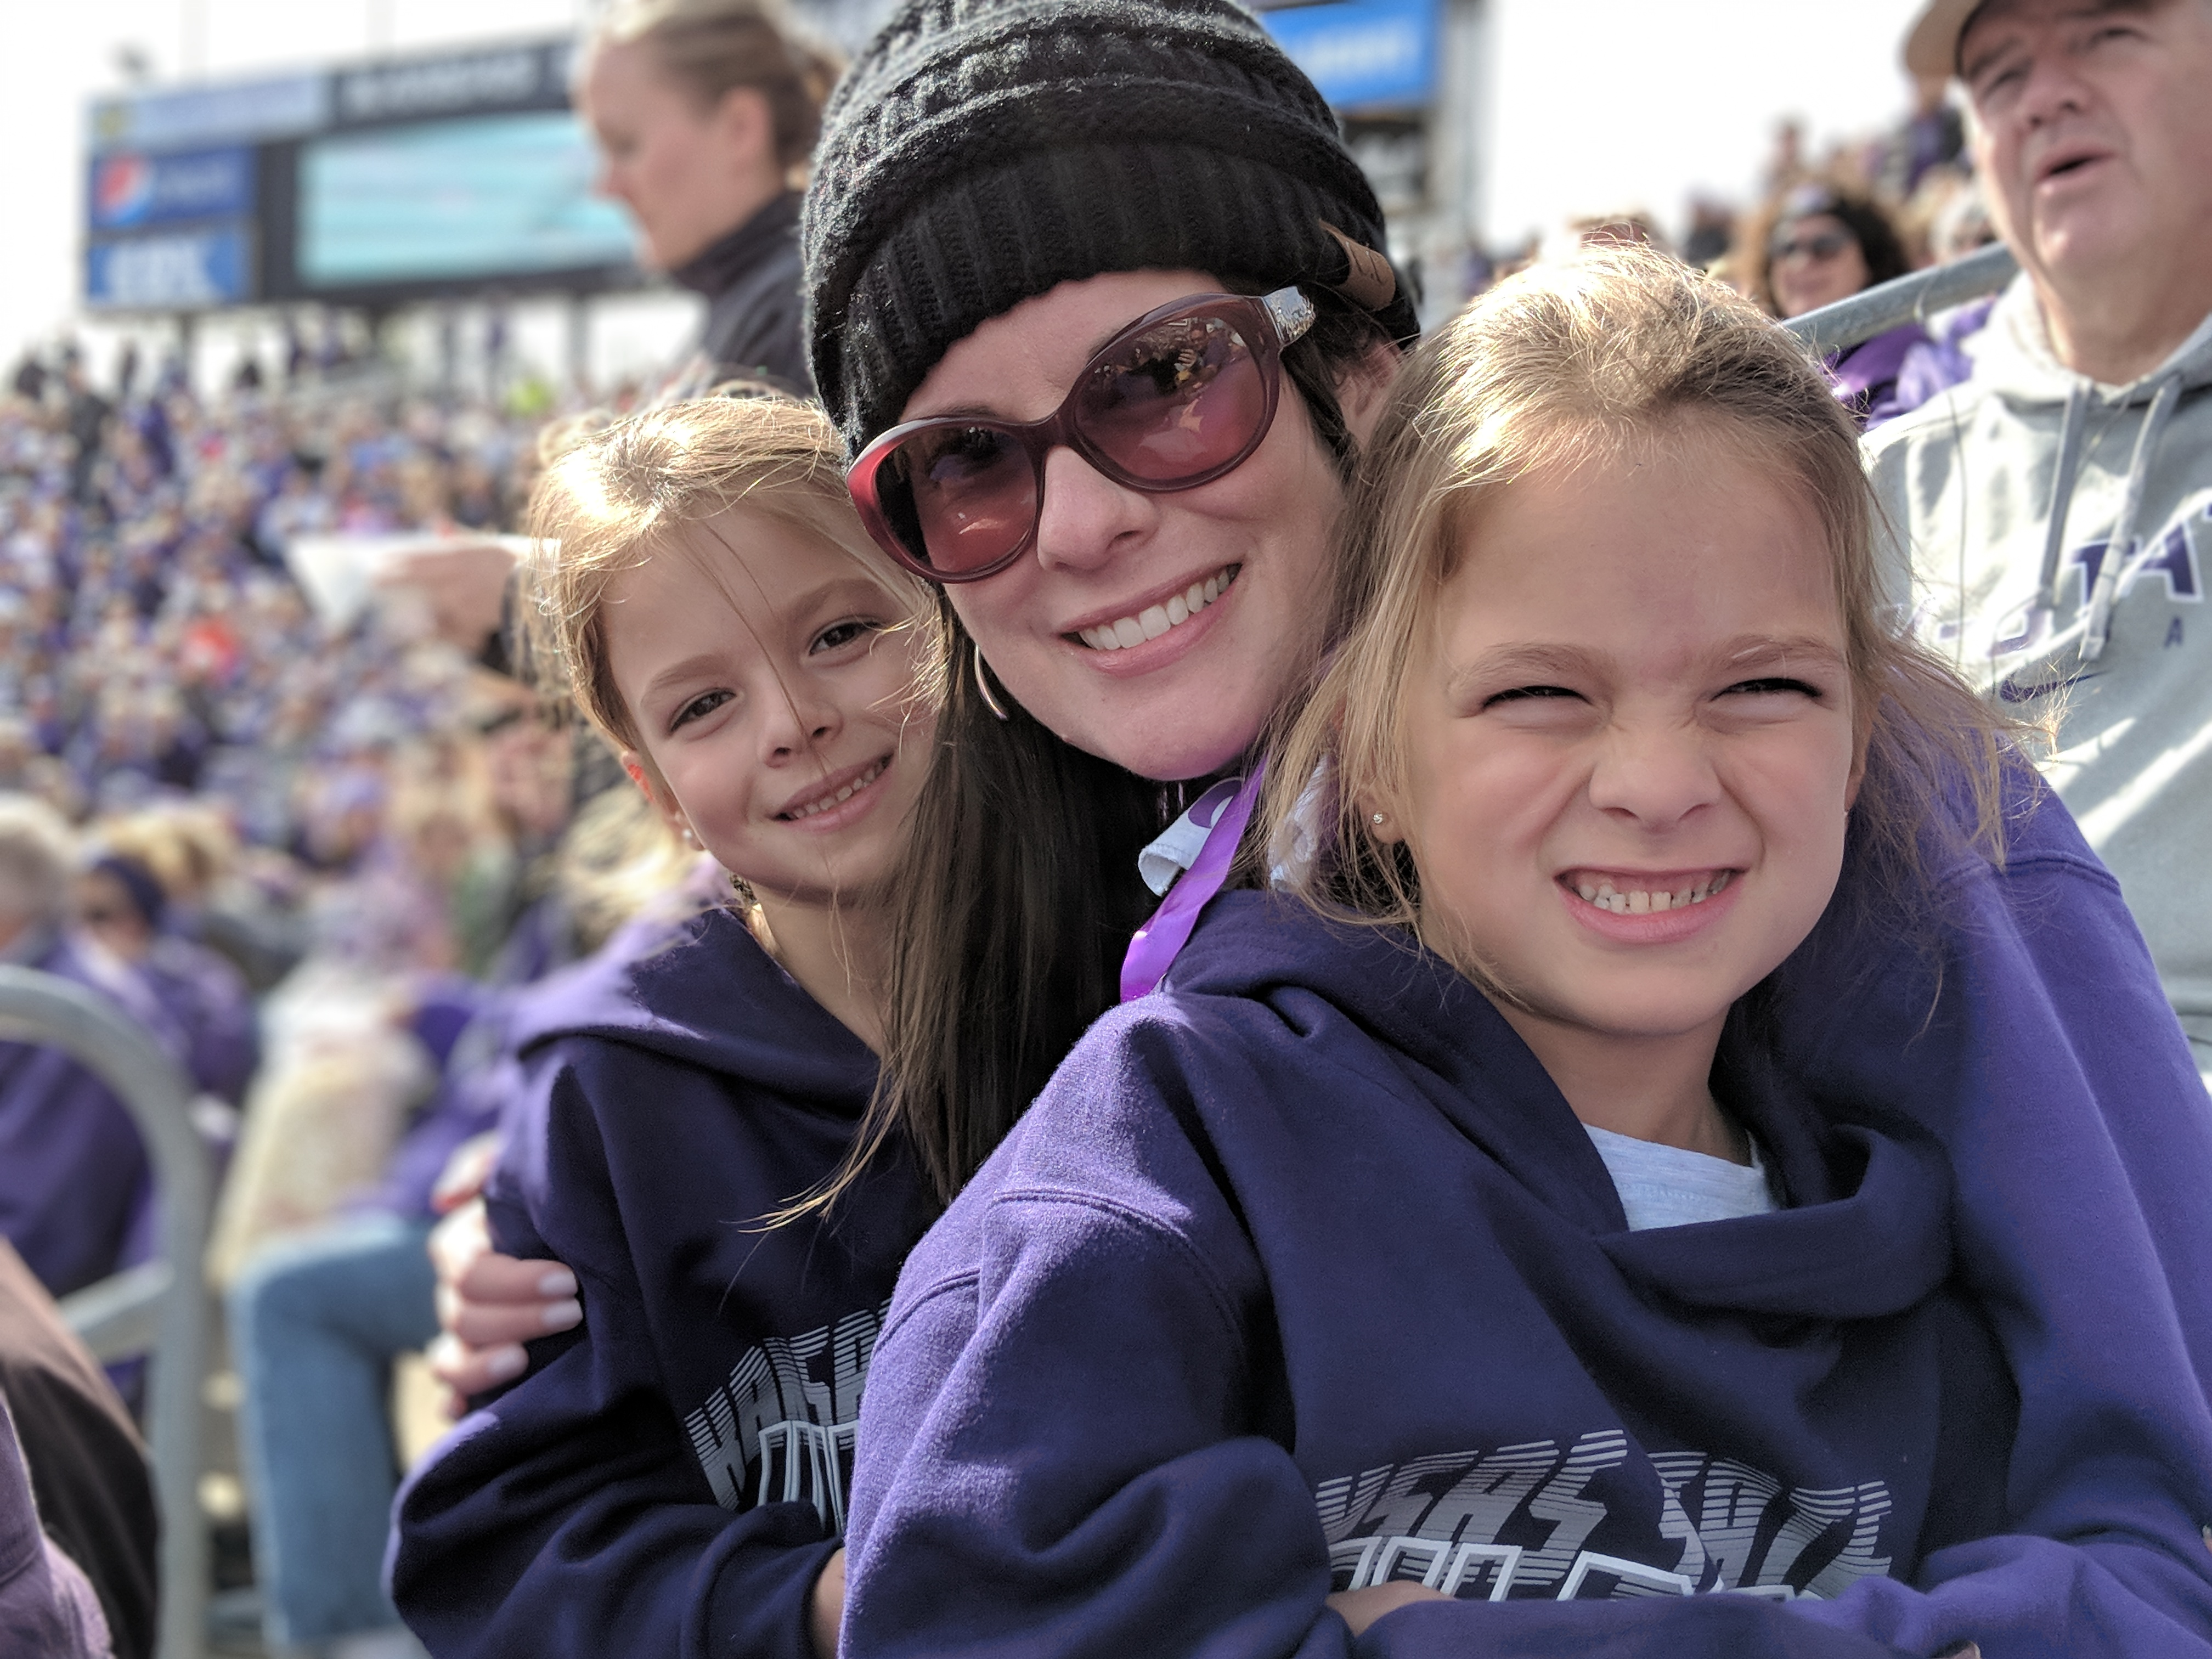 Live from Bill Snyder Family Stadium